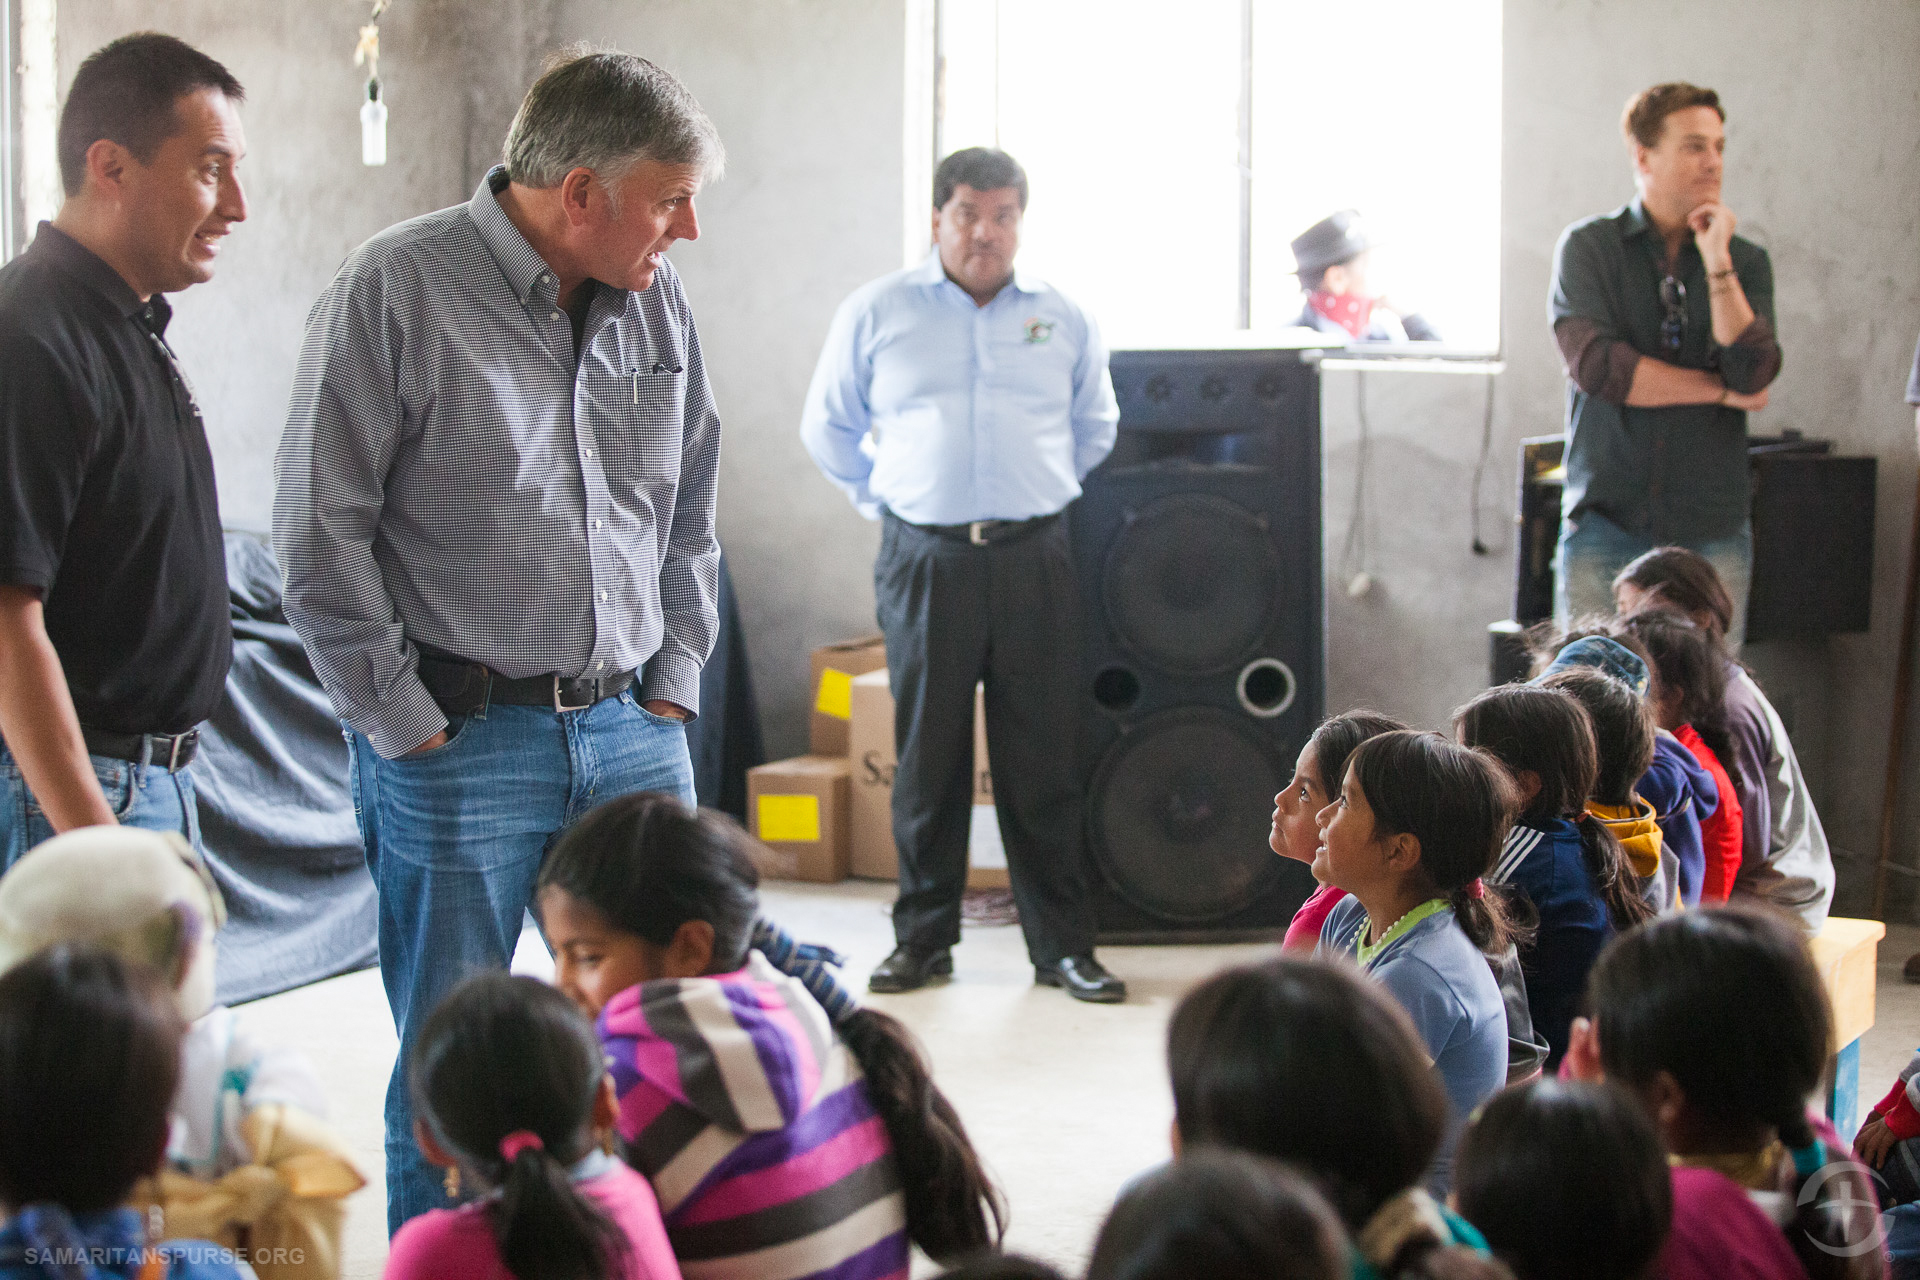 Franklin Graham speaks with local children before handing out shoe box gifts.